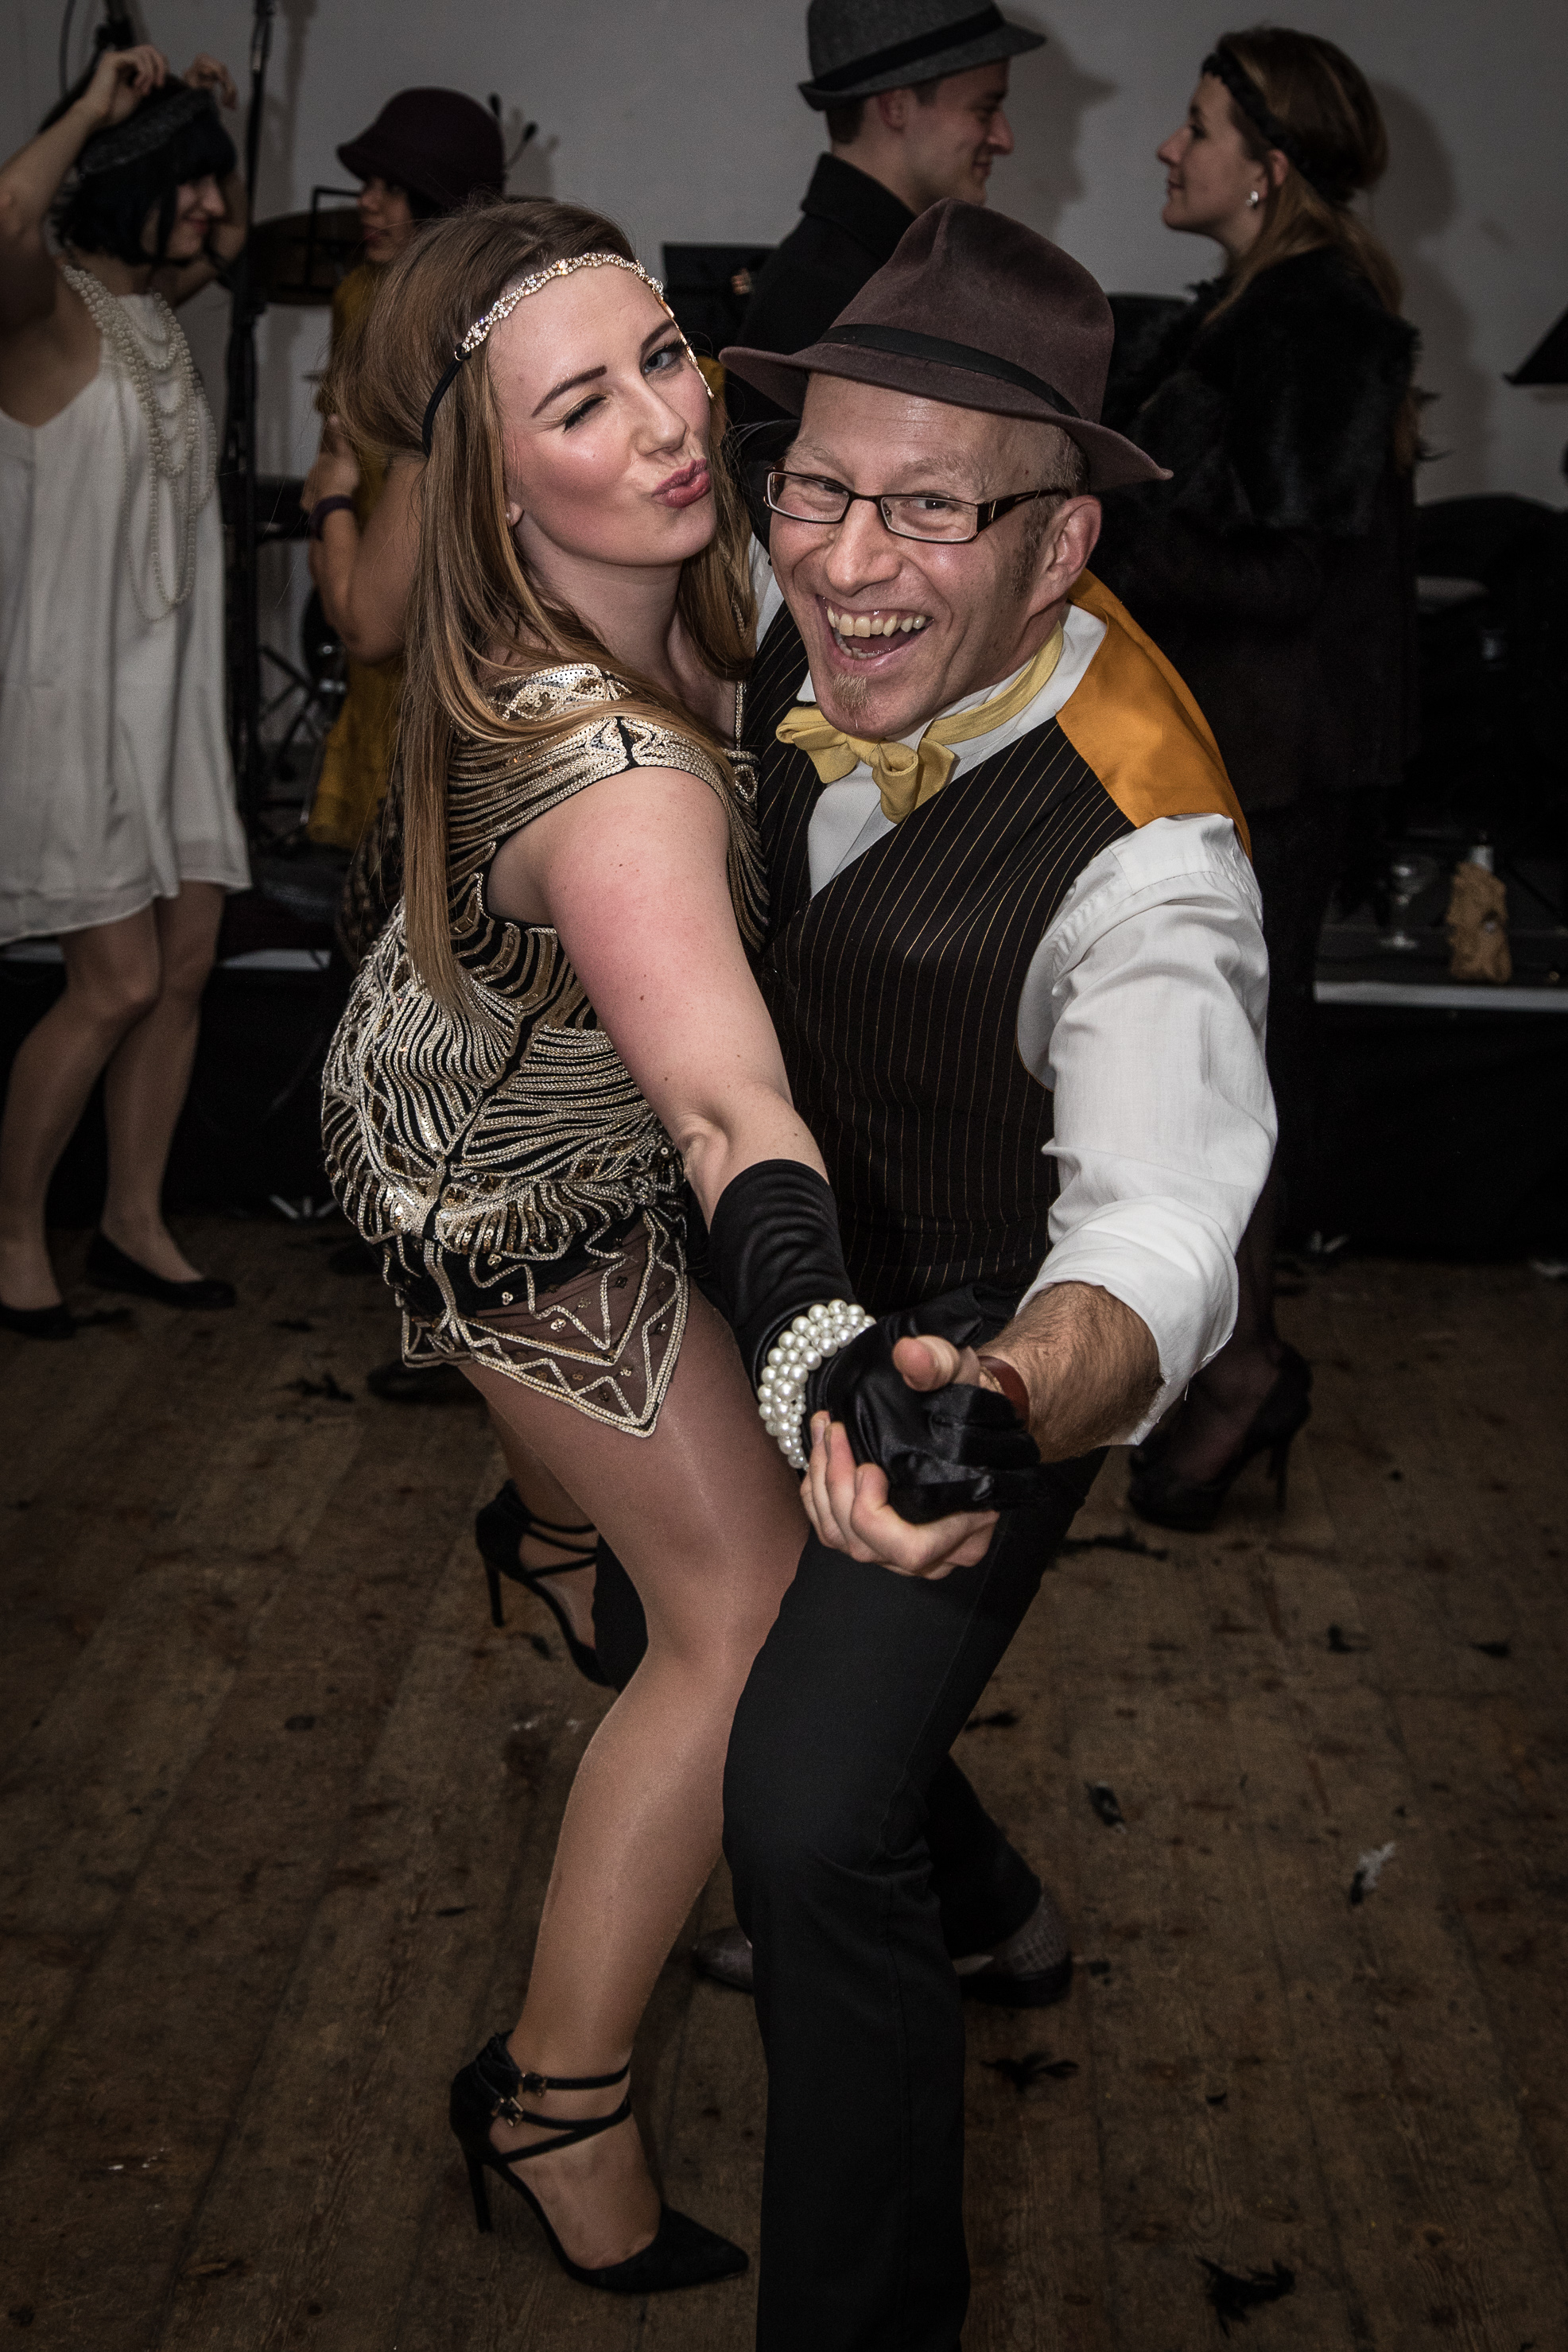 Couple dancing at the Candlelight Club